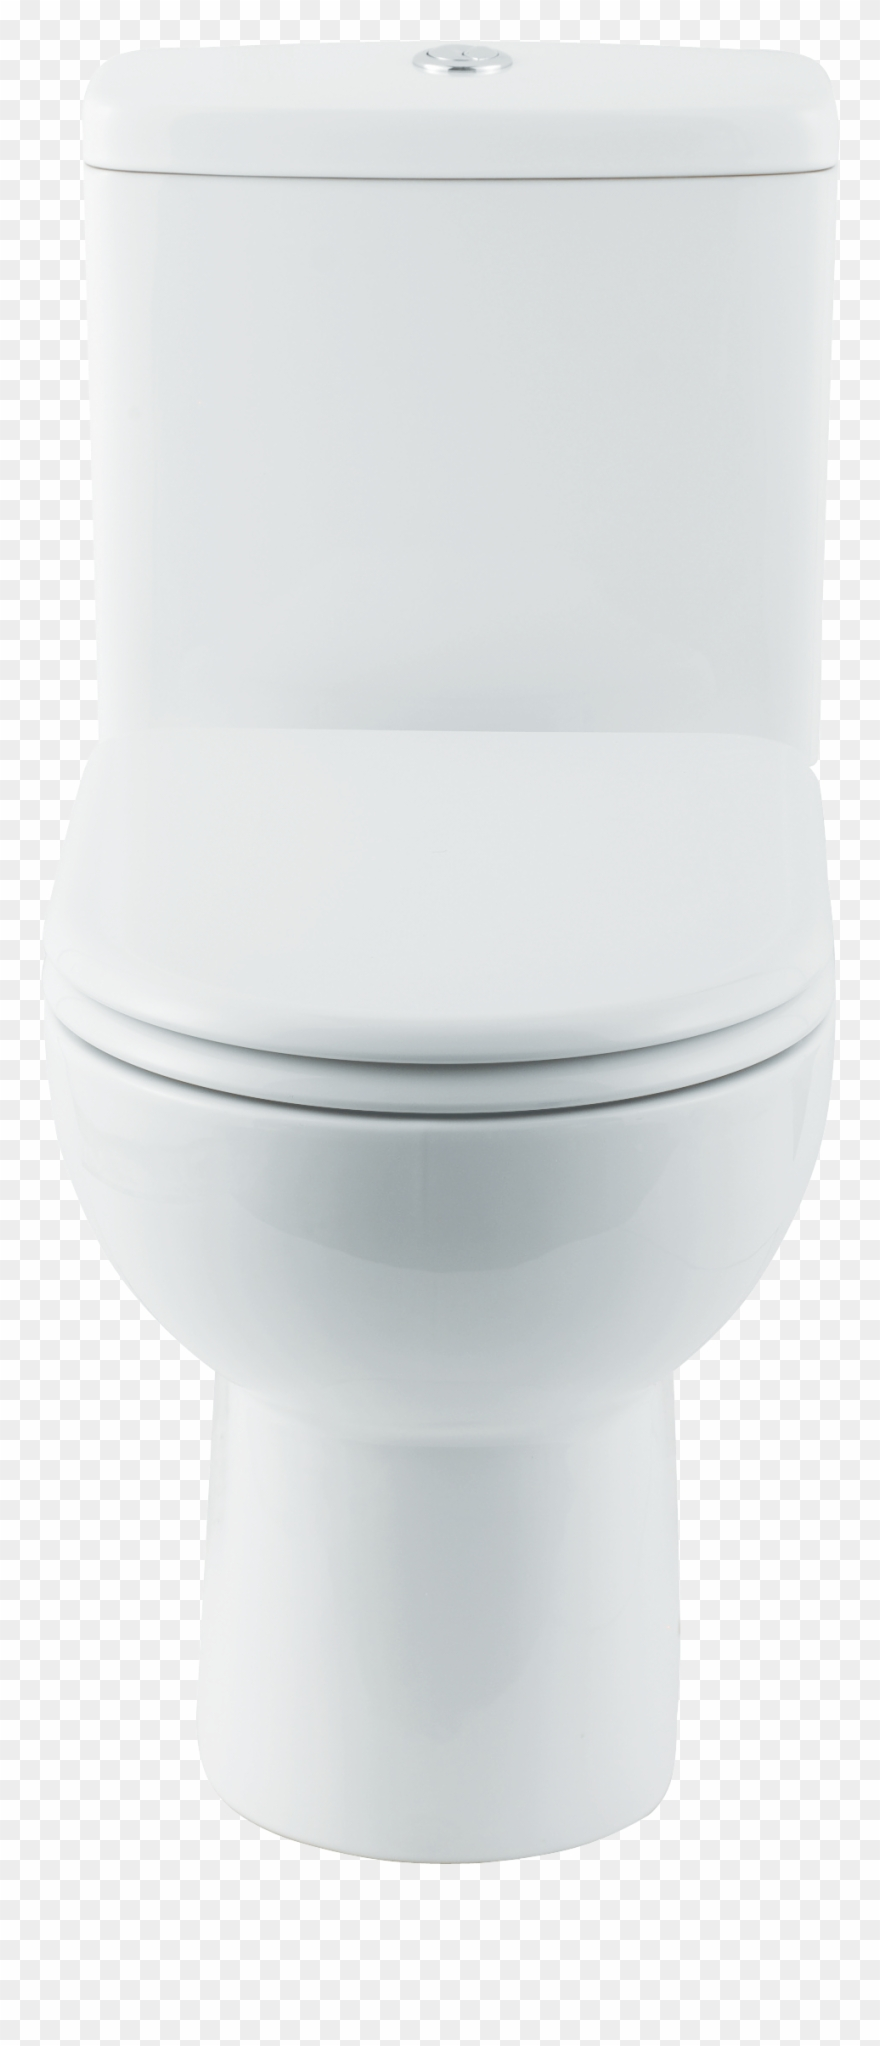 Toilet Png.